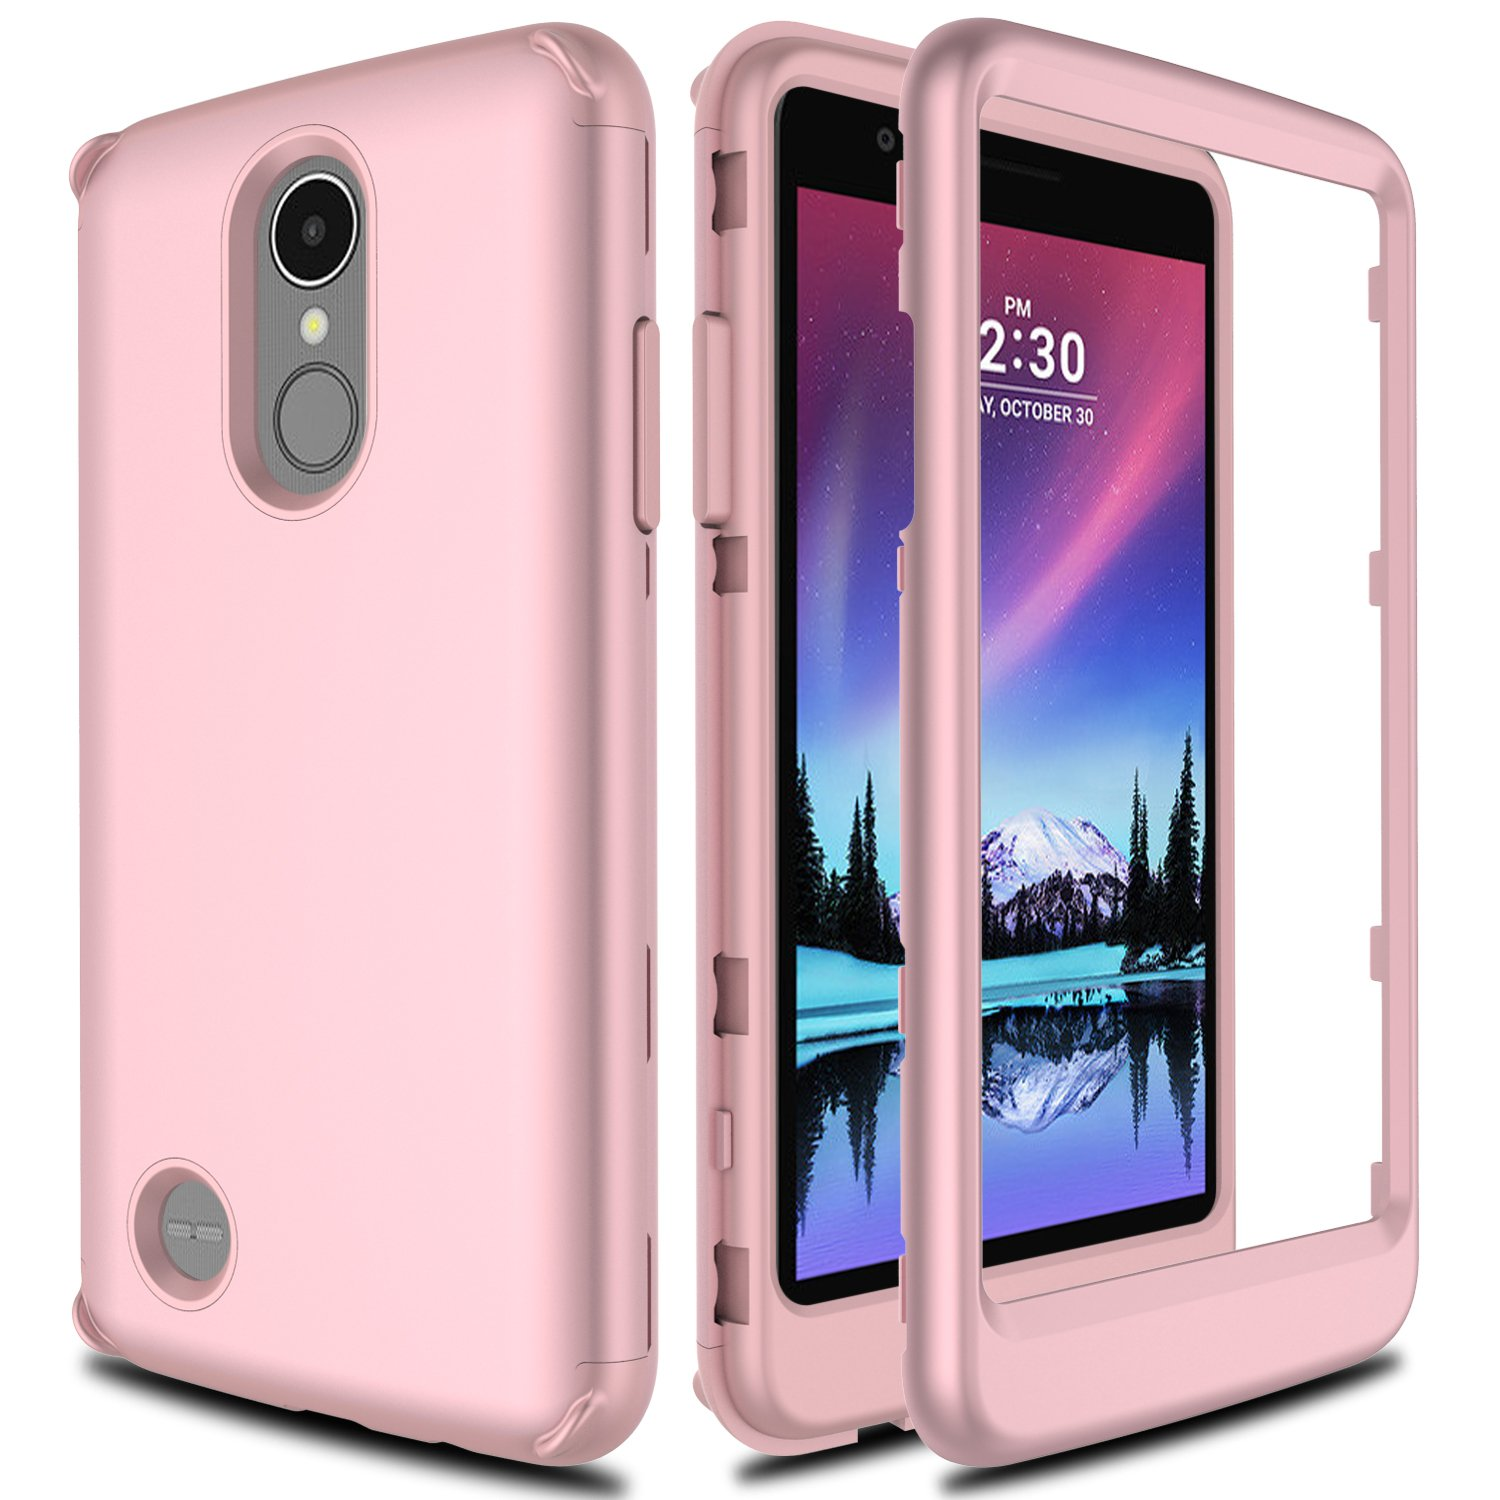 LG K20 Plus Case, LG K20 V Case, LG Grace LTE Case, LG Harmony Case AMENQ 3 in 1 Heavy Duty Absorb Impact Touch Silicone Rubber Smooth PC Protection Cover for LG K10 2017 (Matte Rose)